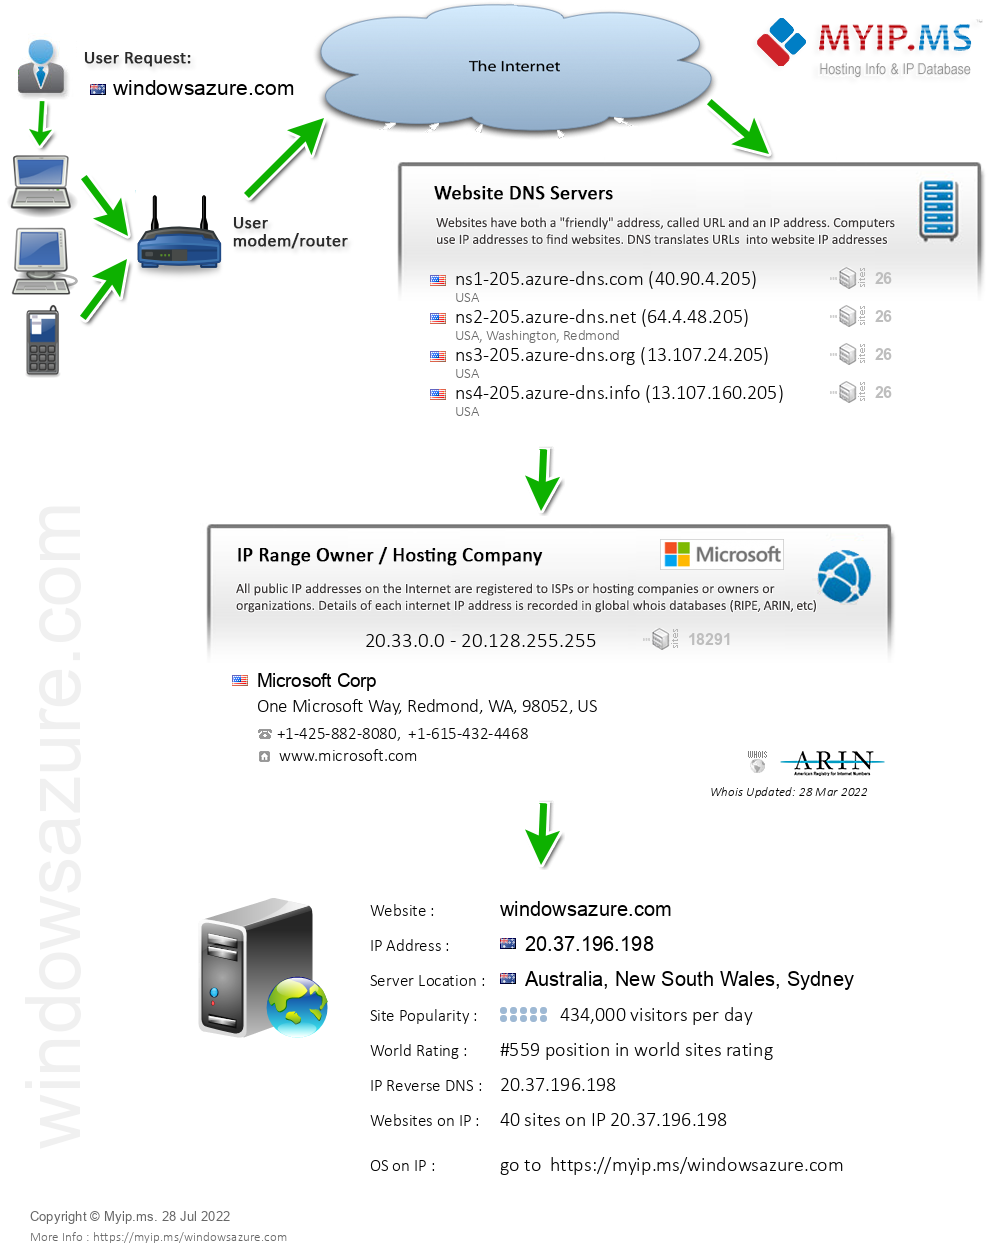 Windowsazure.com - Website Hosting Visual IP Diagram